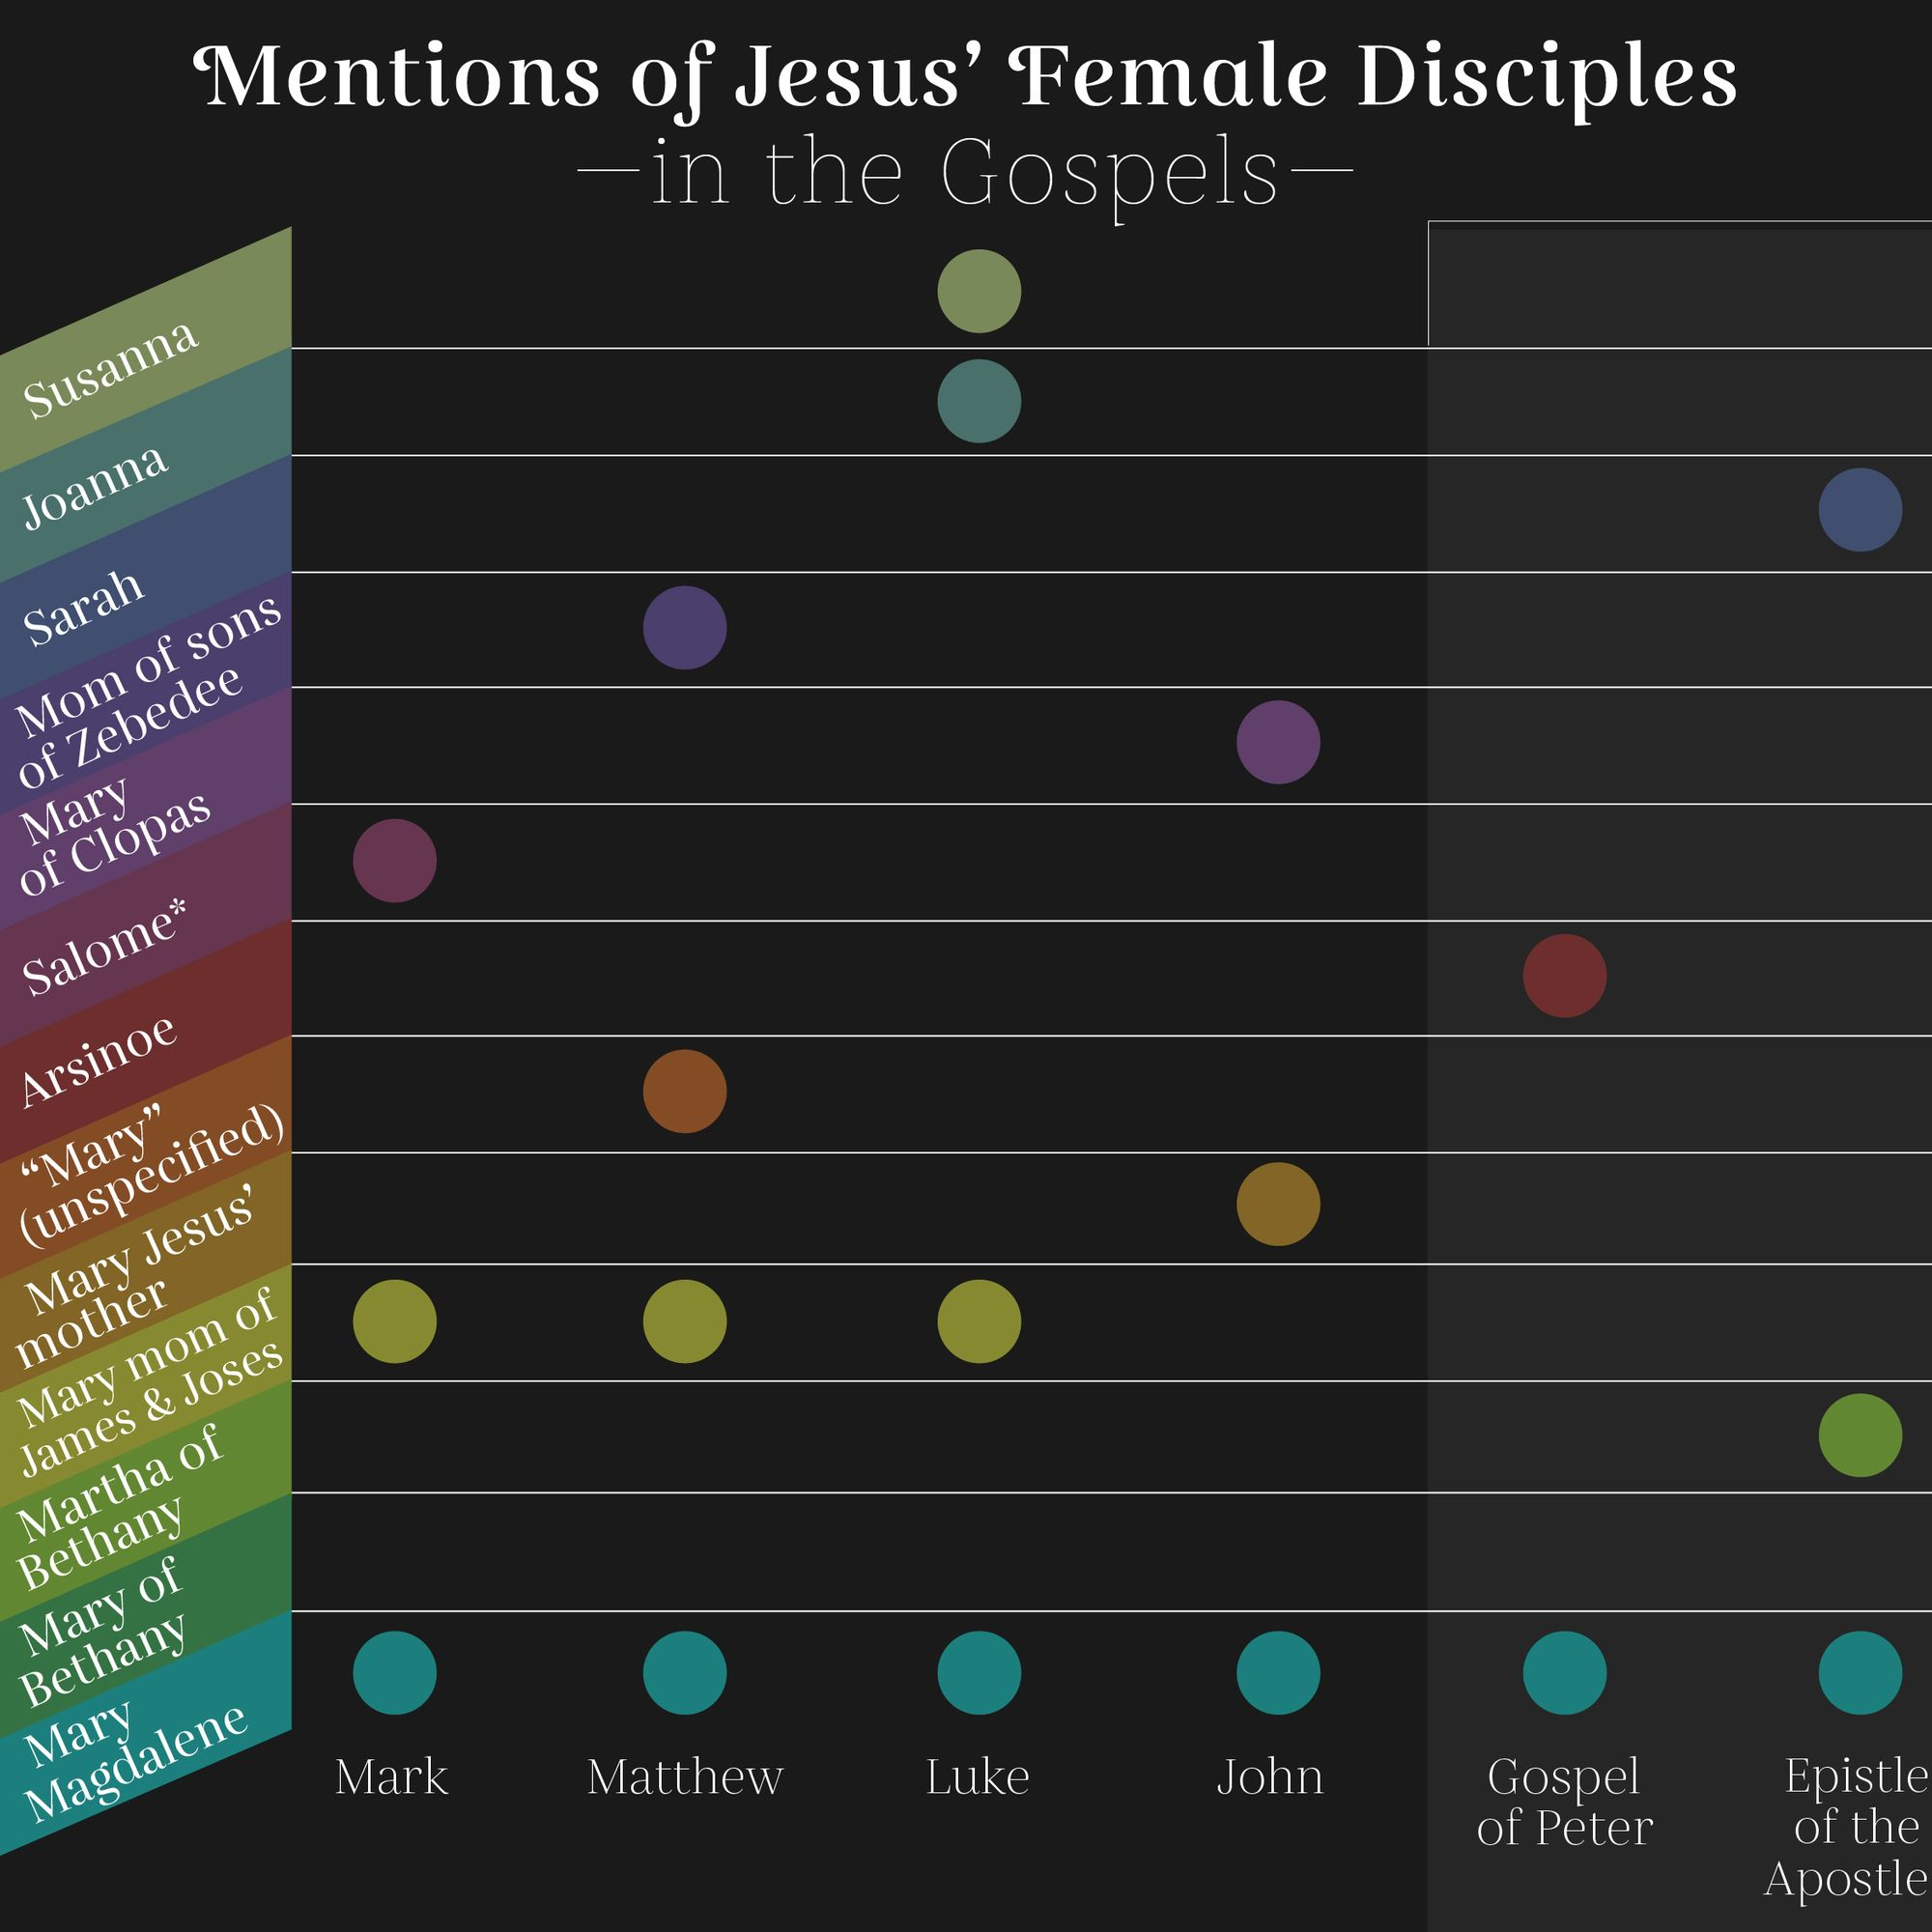 All Named Women who were Disciples of Jesus in the Gospels